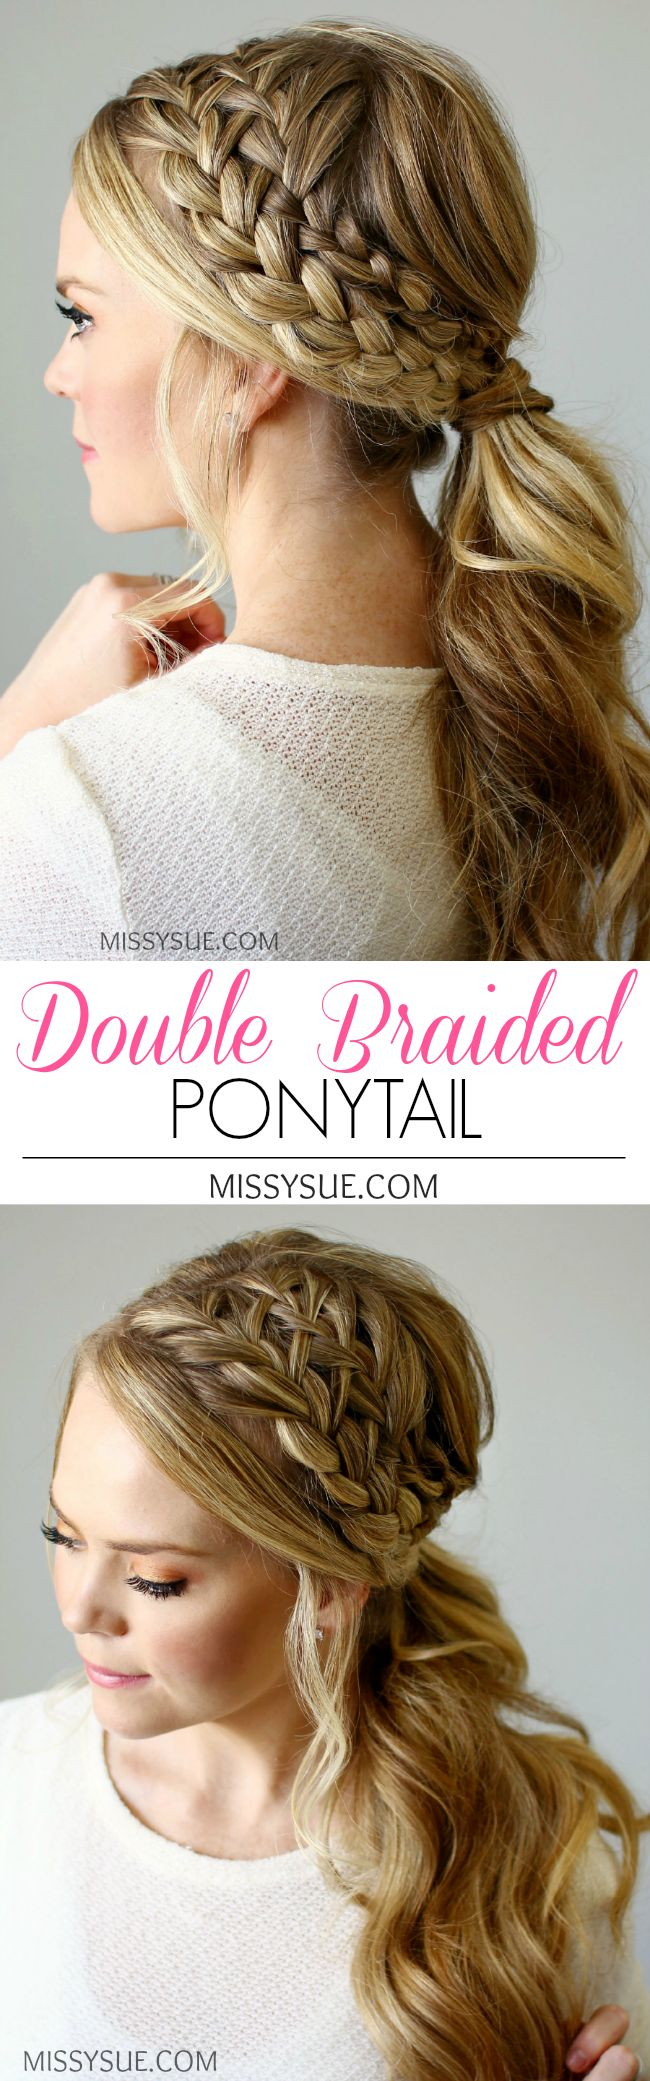 Tremendous 1000 Ideas About Double Braid On Pinterest Braids Fishtail And Hairstyles For Women Draintrainus